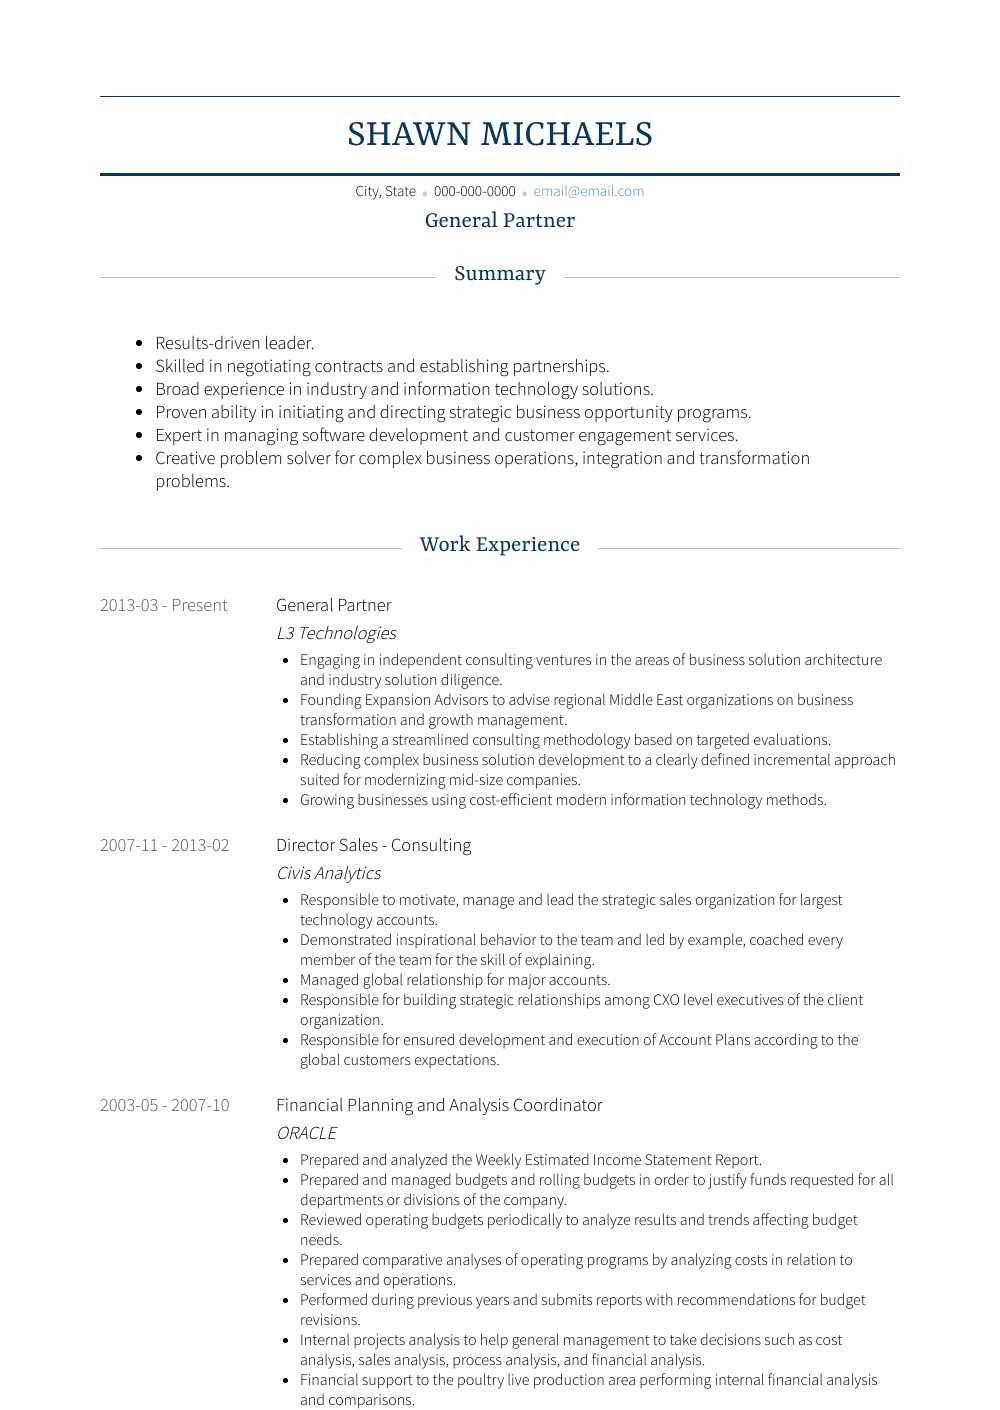 General Partner Resume Sample